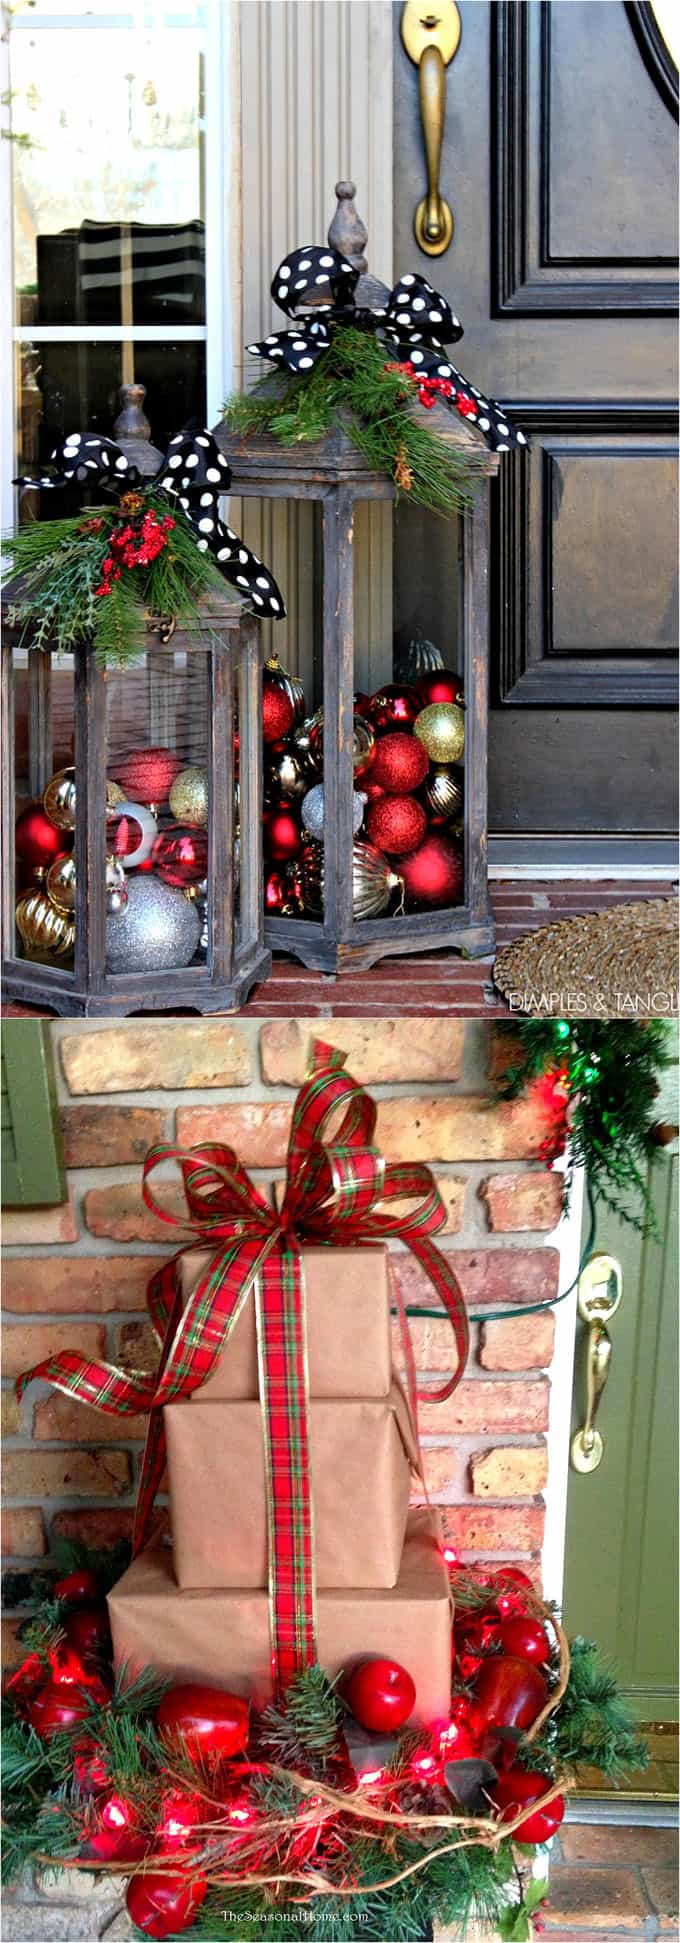 Outdoor Christmas Decorations DIY  Gorgeous Outdoor Christmas Decorations 32 Best Ideas